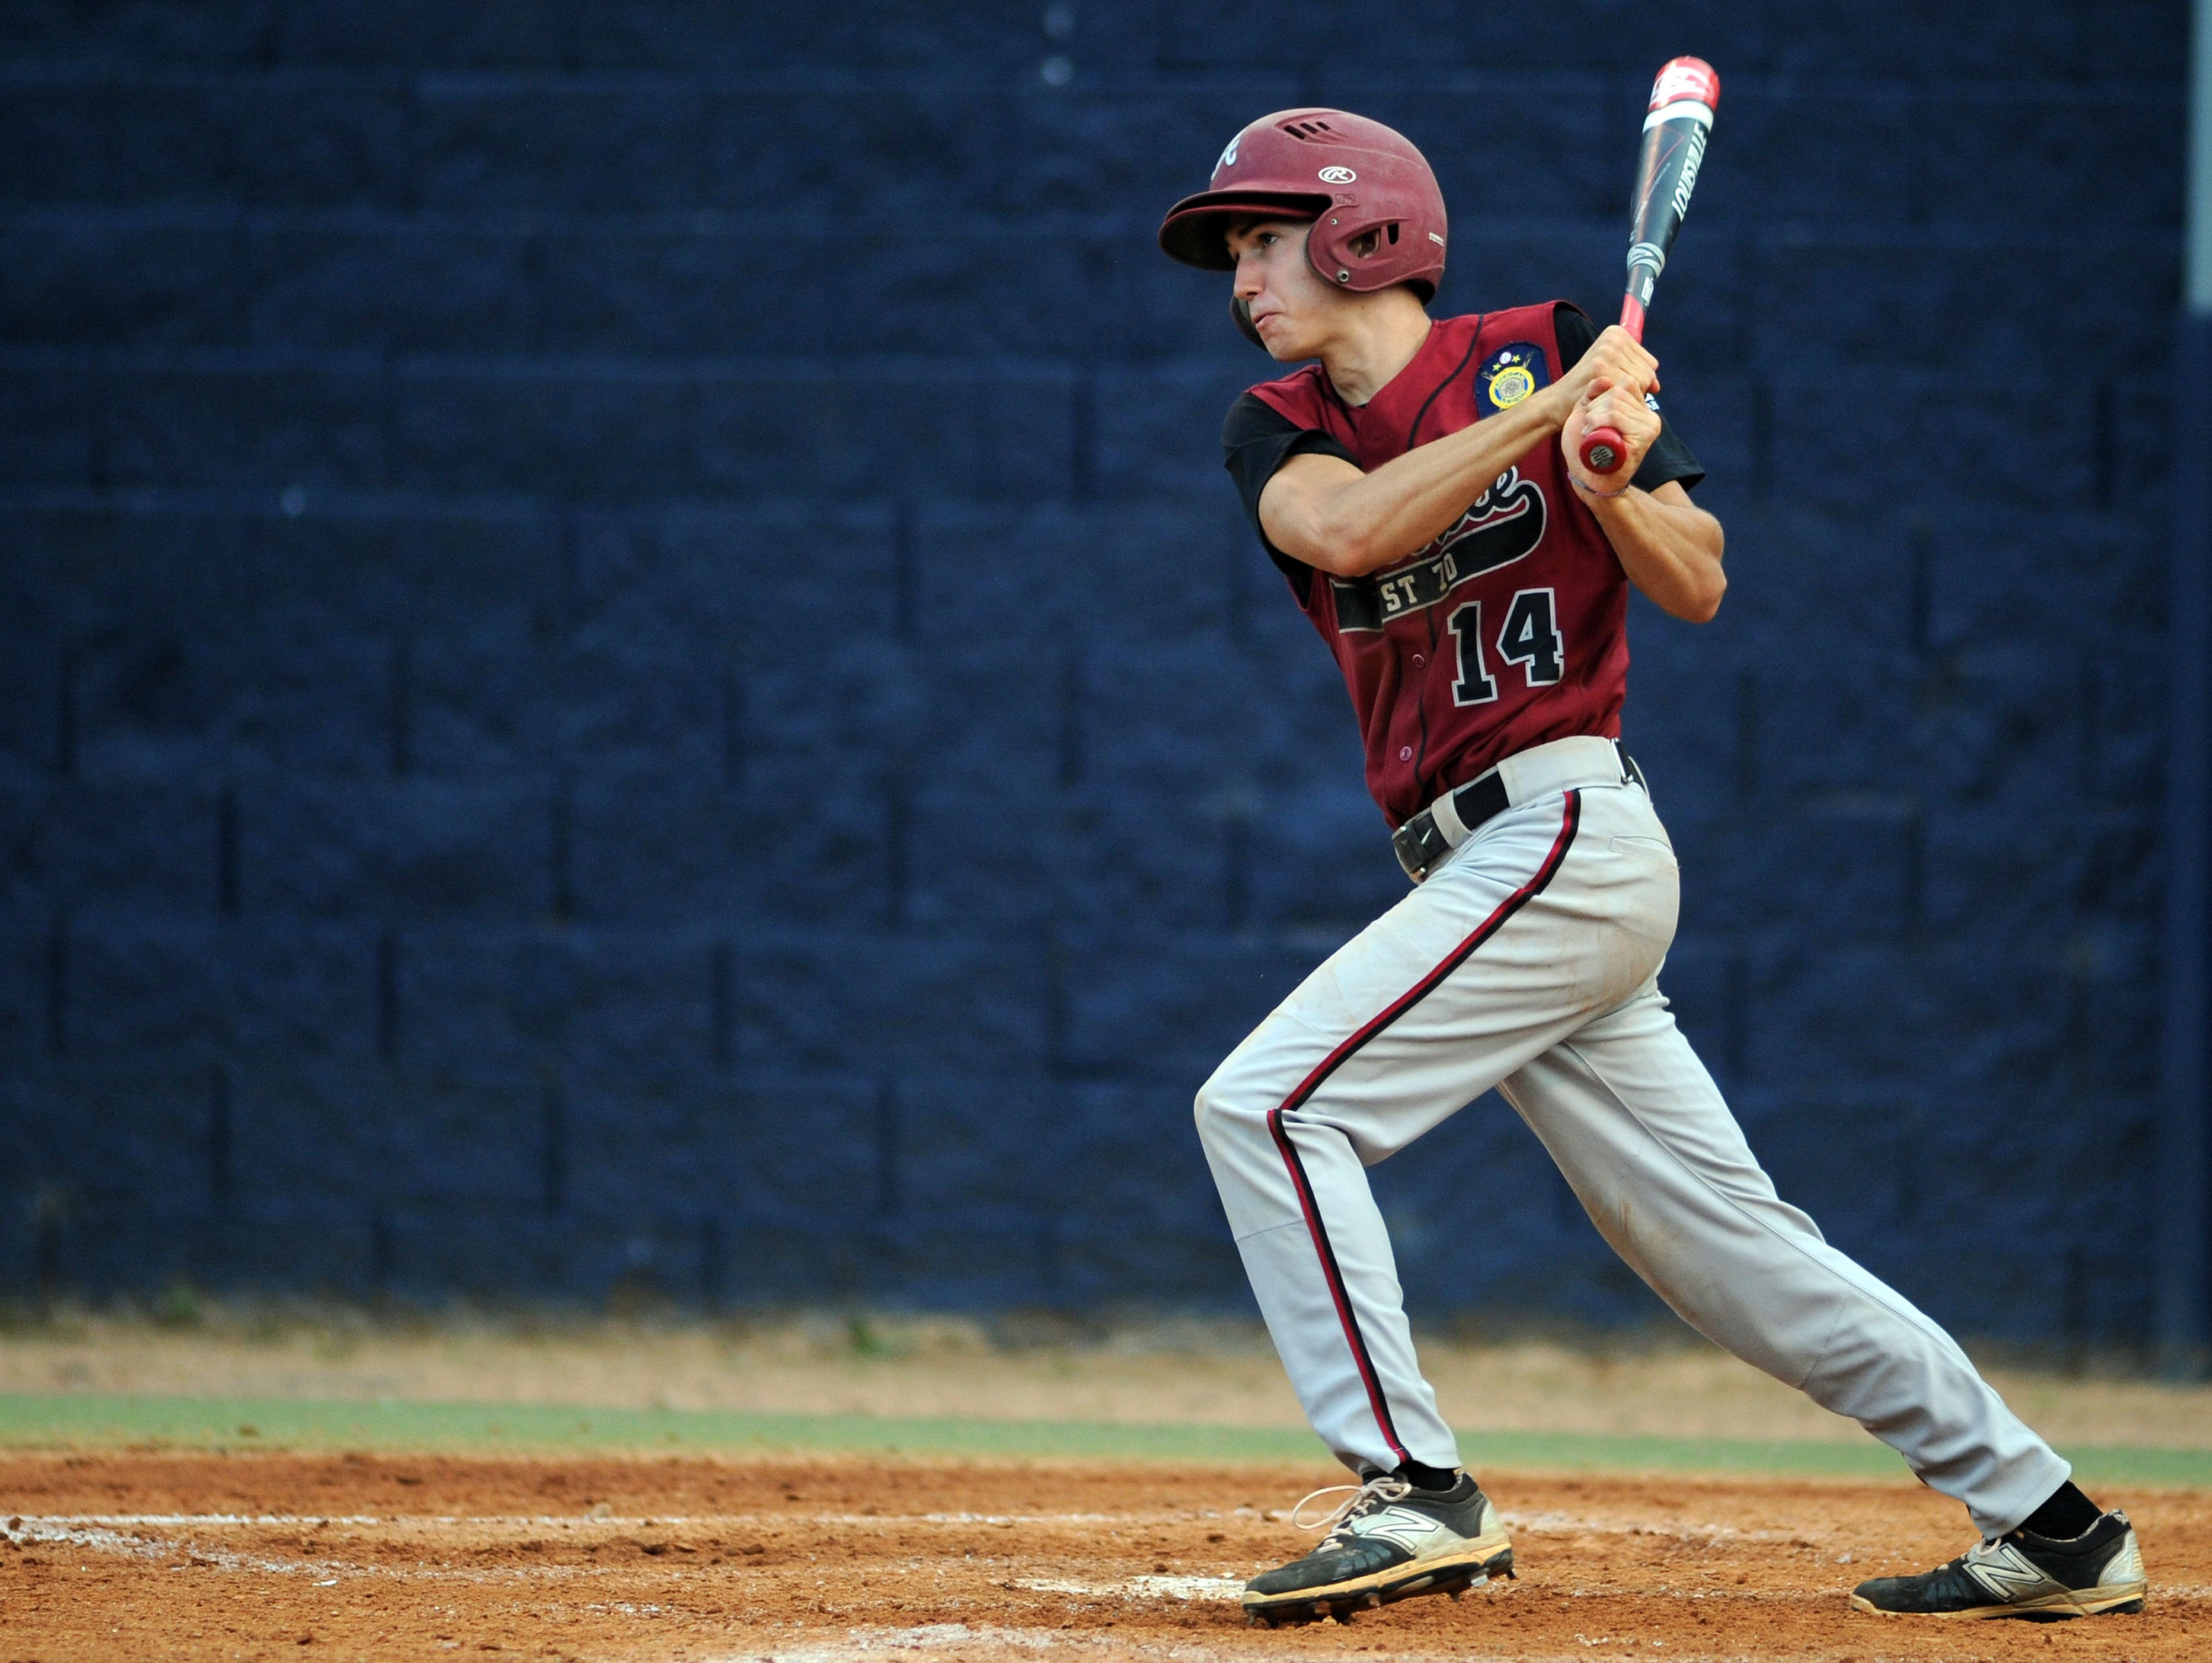 Nate Fore had the winning hit for Asheville Post 70 on Thursday night.